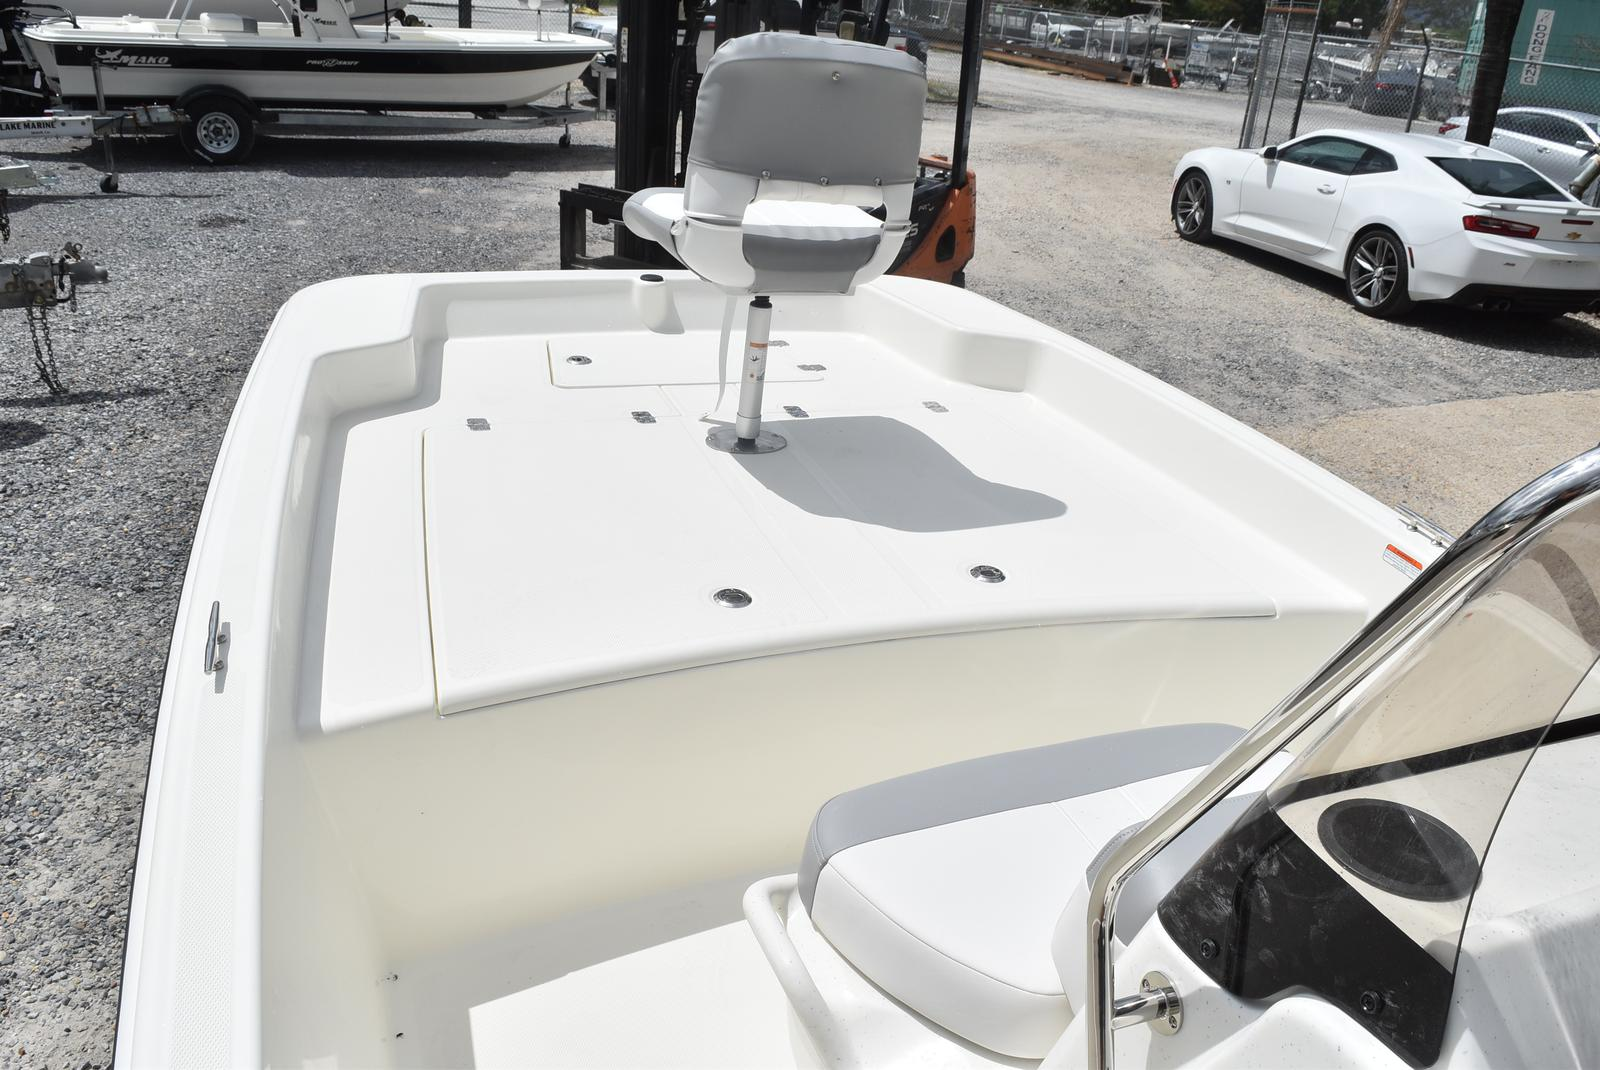 2020 Mako boat for sale, model of the boat is Pro Skiff 17, 75 ELPT & Image # 410 of 702